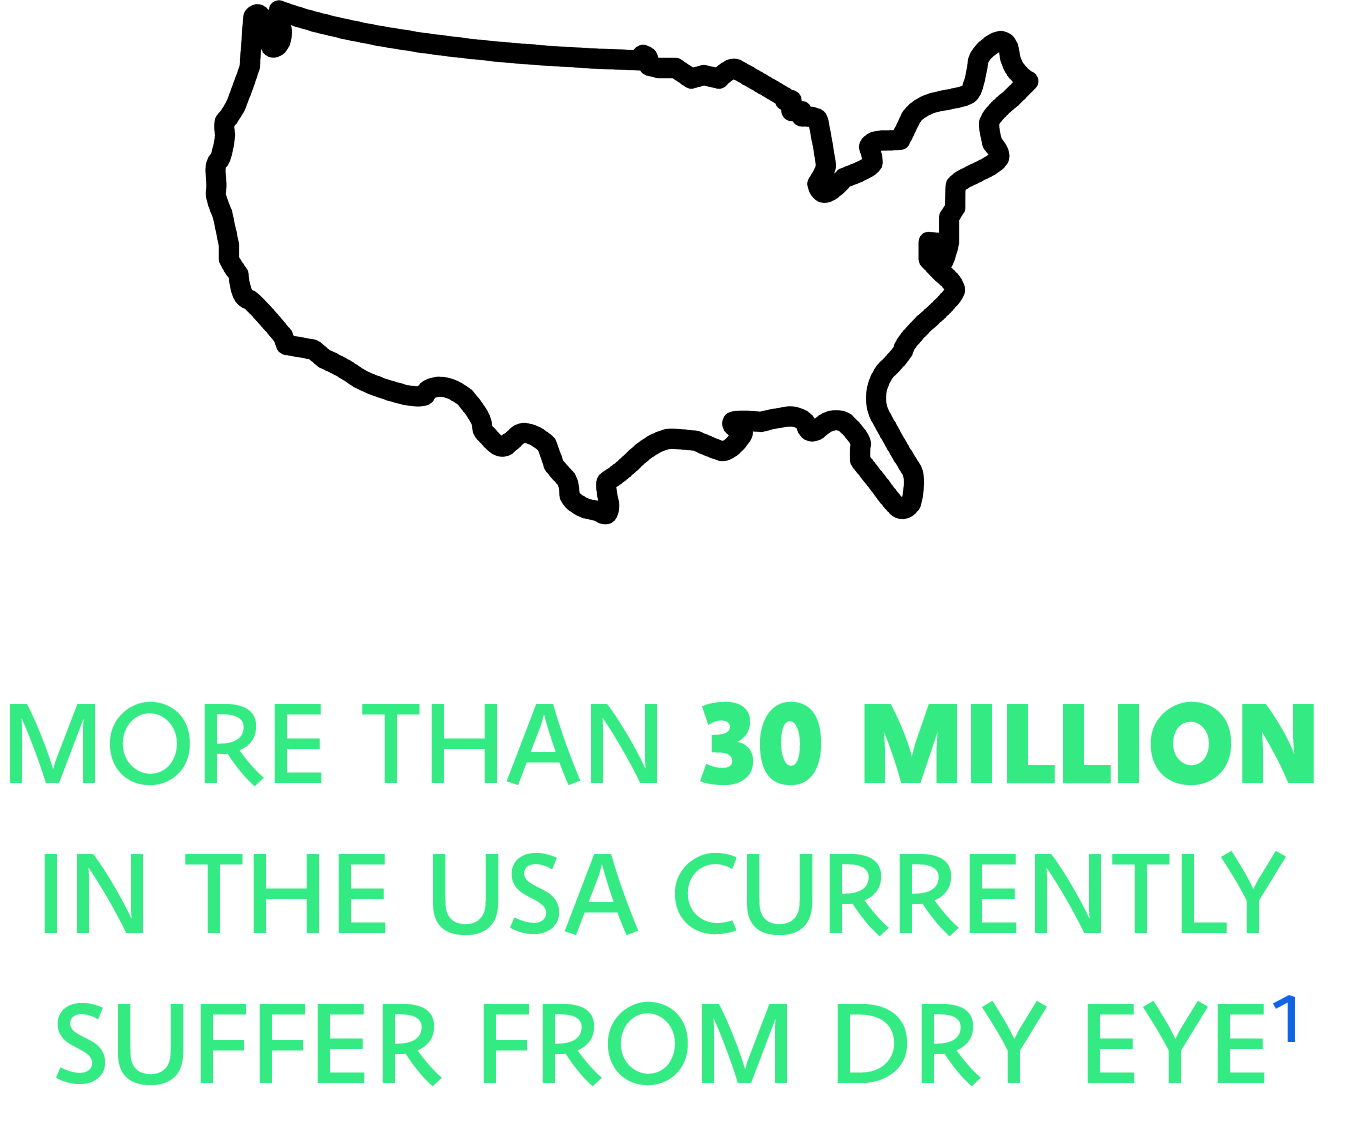 More than 30 million in the US currently suffer from dry eye. Meibomian Gland Dysfunction (MGD) is a significant factor in 86% of all dry eye cases, and must be seriously assessed as a key portion of dry eye treatment.